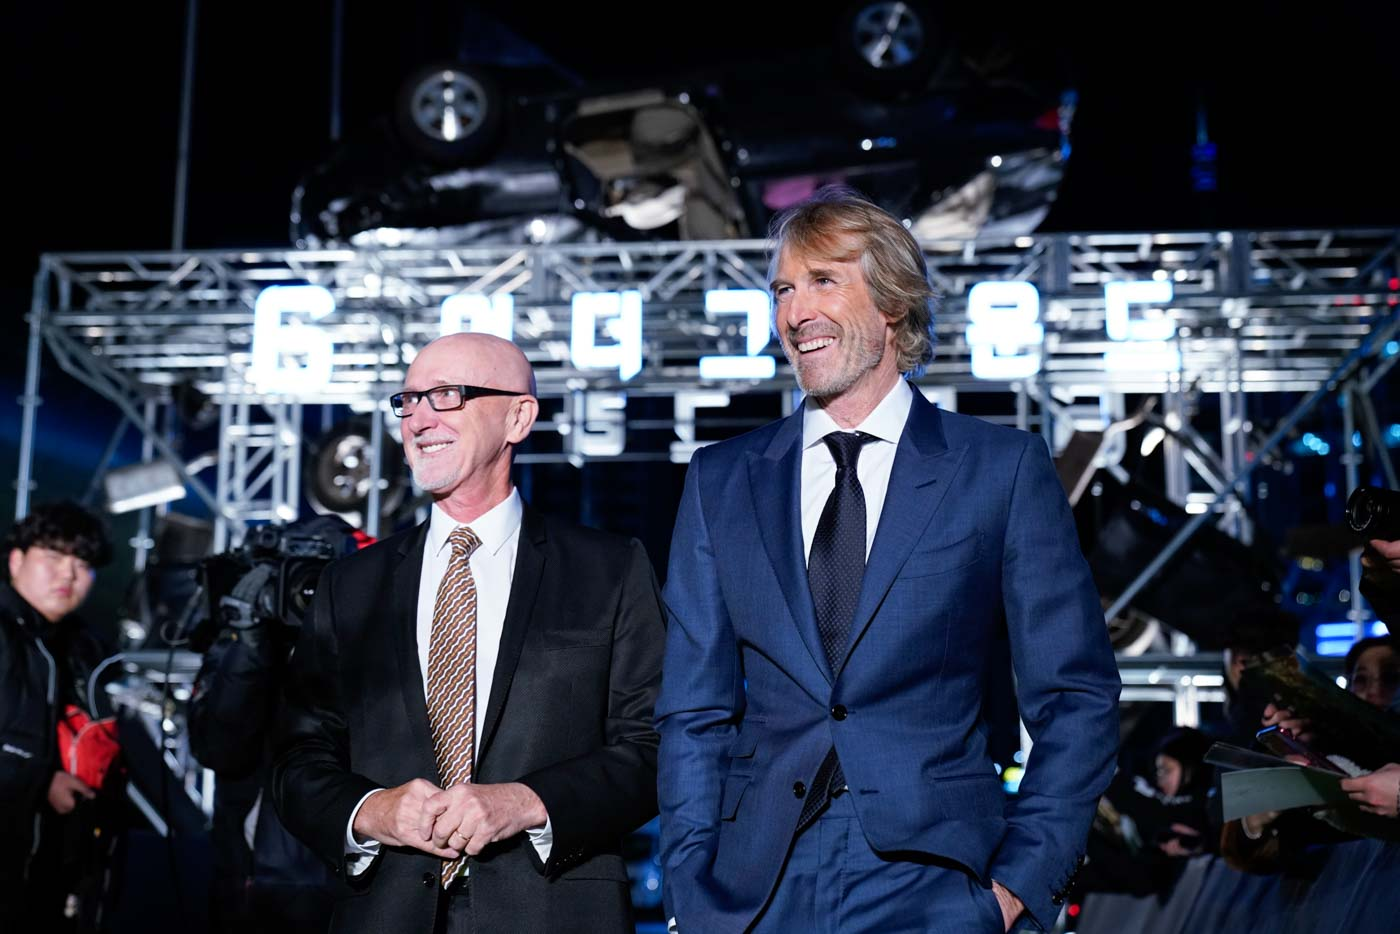 A-Team: Producer Ian Bryce and director Michael Bay attend the world premiere of Netflix's '6 Underground' at Dongdaemun Design Plaza on December 02, 2019 in Seoul, South Korea. Photo courtesy of Netflix